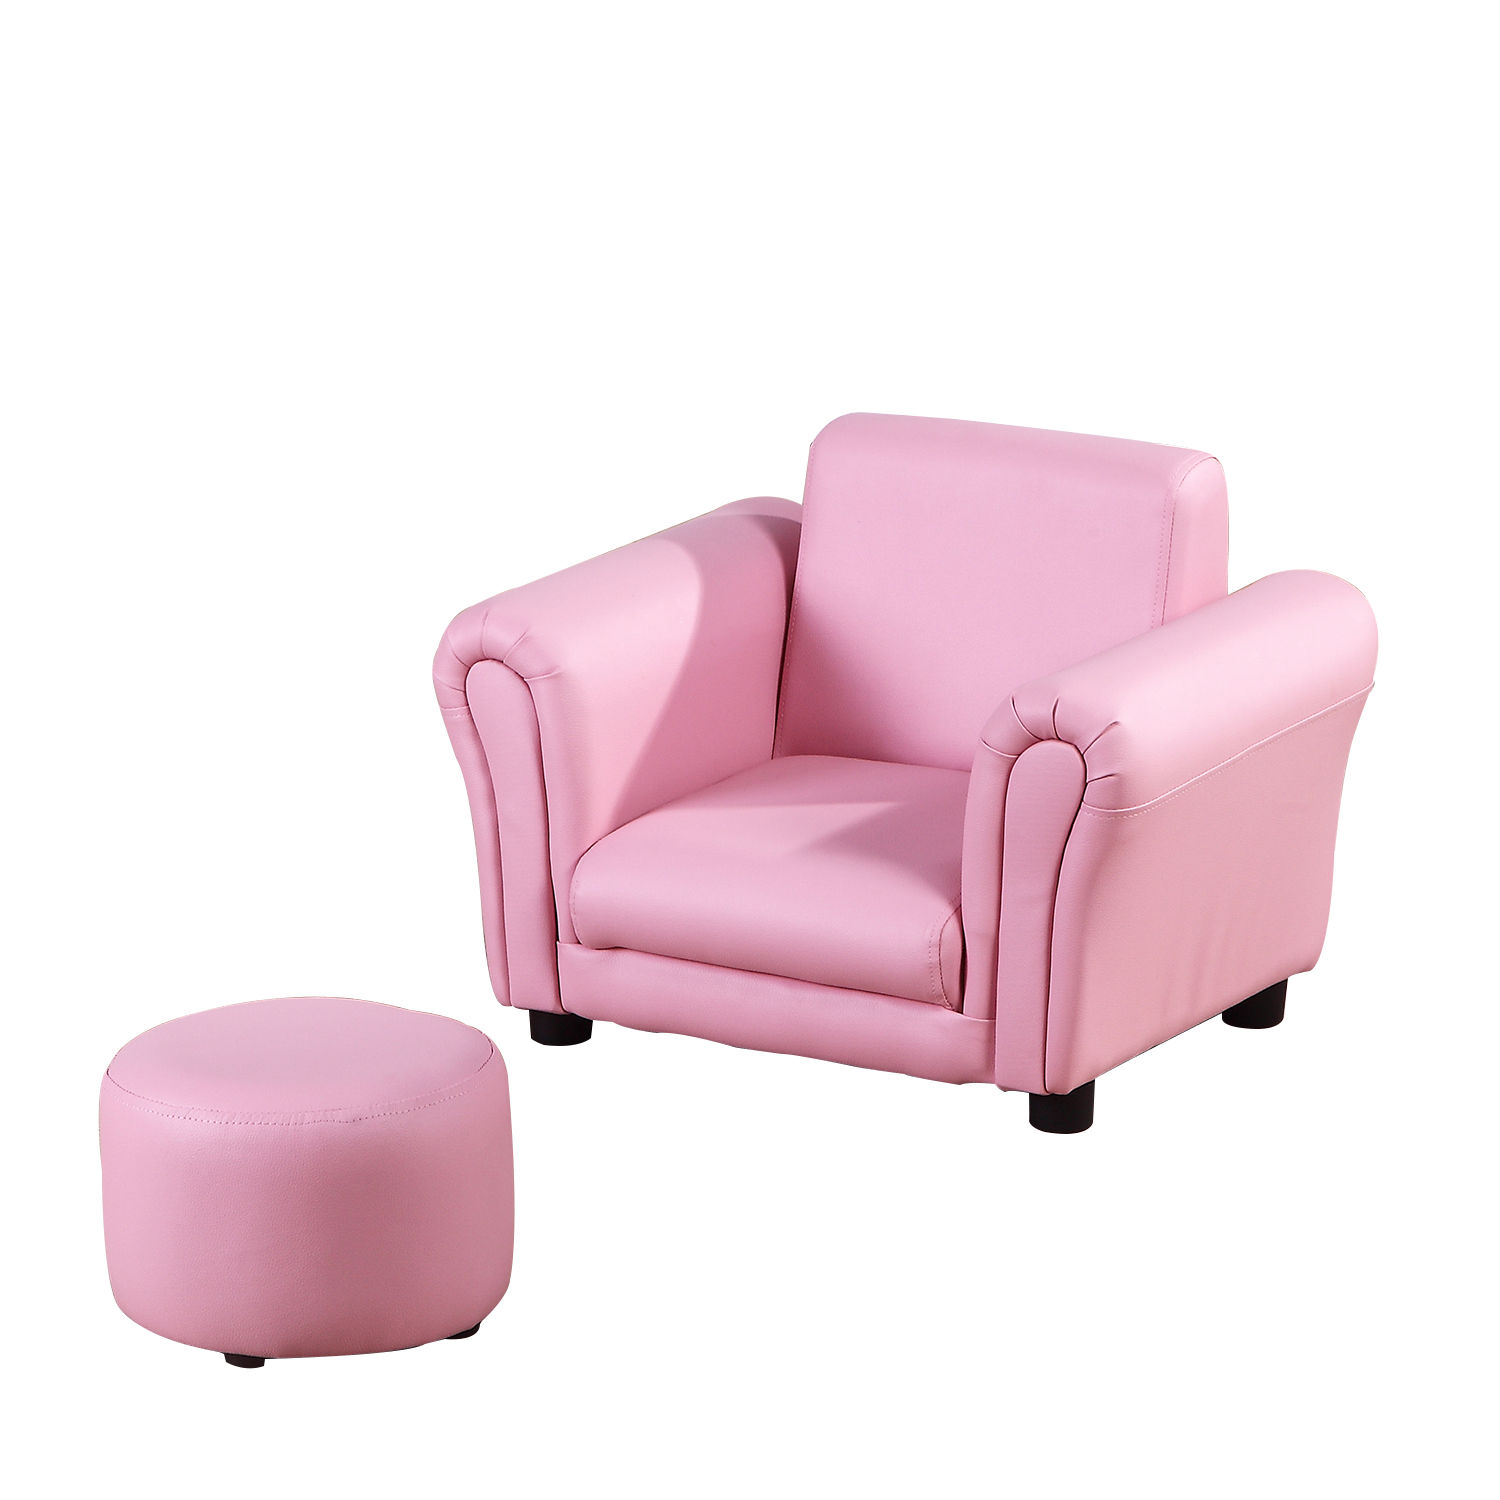 Kids-Sofa-Children-Chair-Seat-Armchair-W-Footstool-Playroom-Bedroom-Black-Pink thumbnail 16